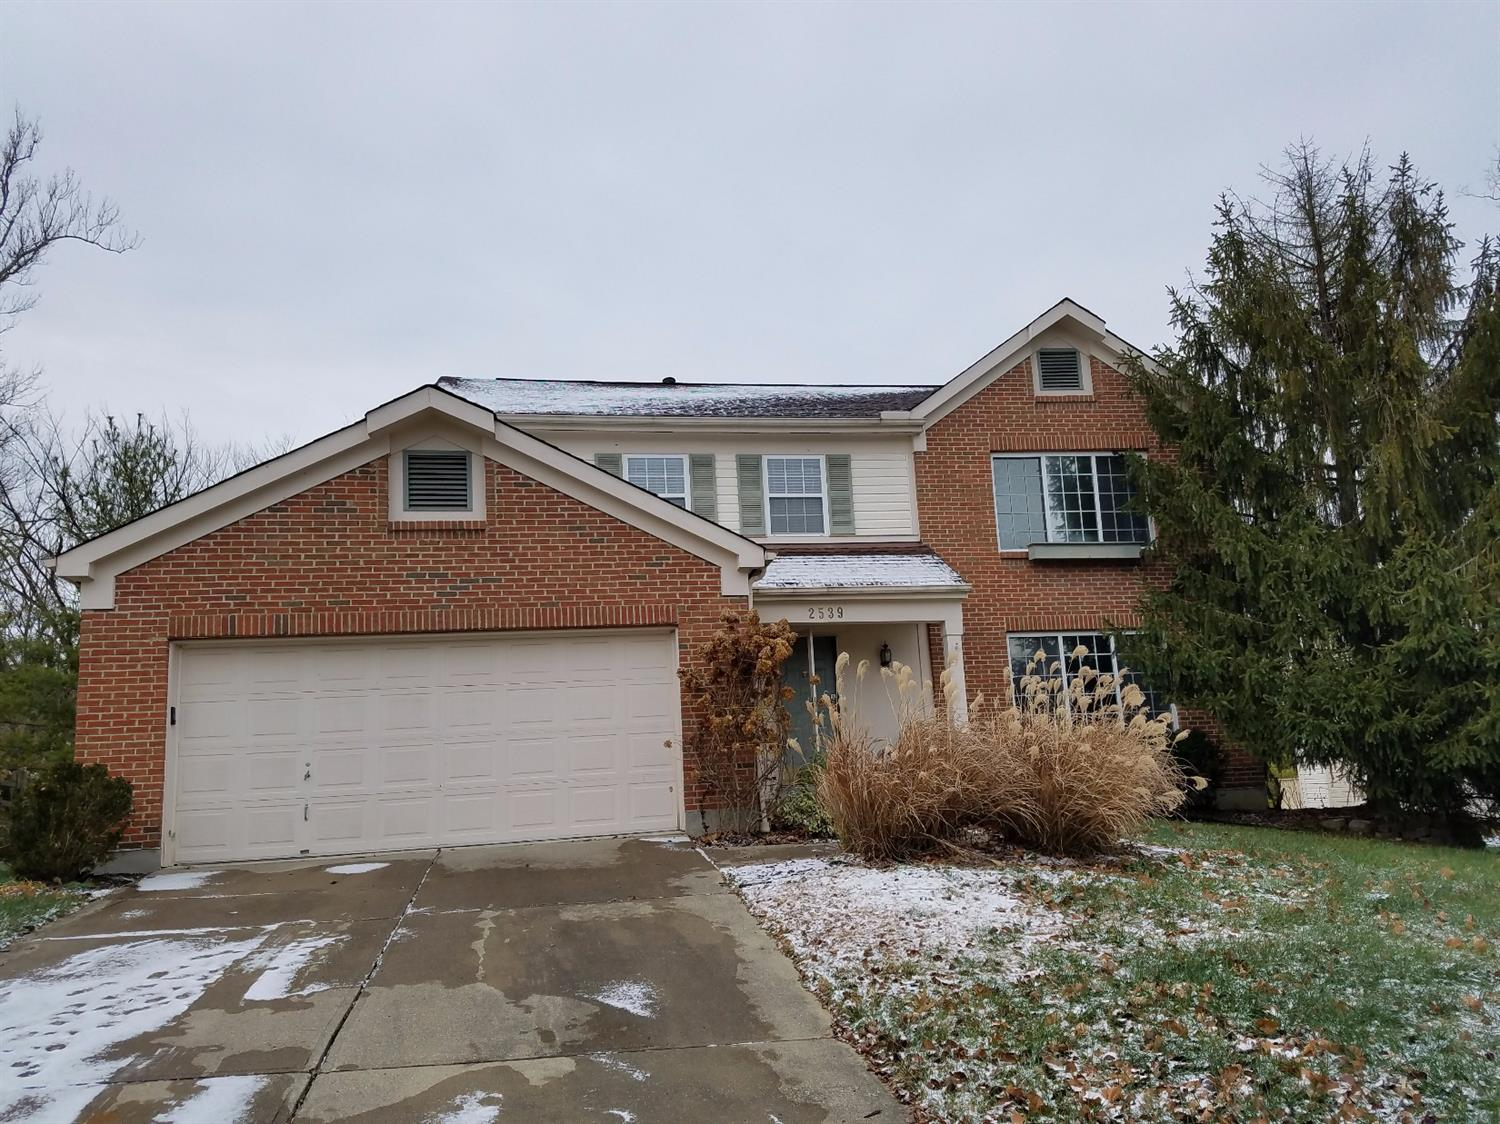 Large Two Story in the Desirable Reserves of Turpin in Mt. Washington. Open floor plan and great flow between family room / Kitchen.  In quiet cul-de-sac. Move in Ready.